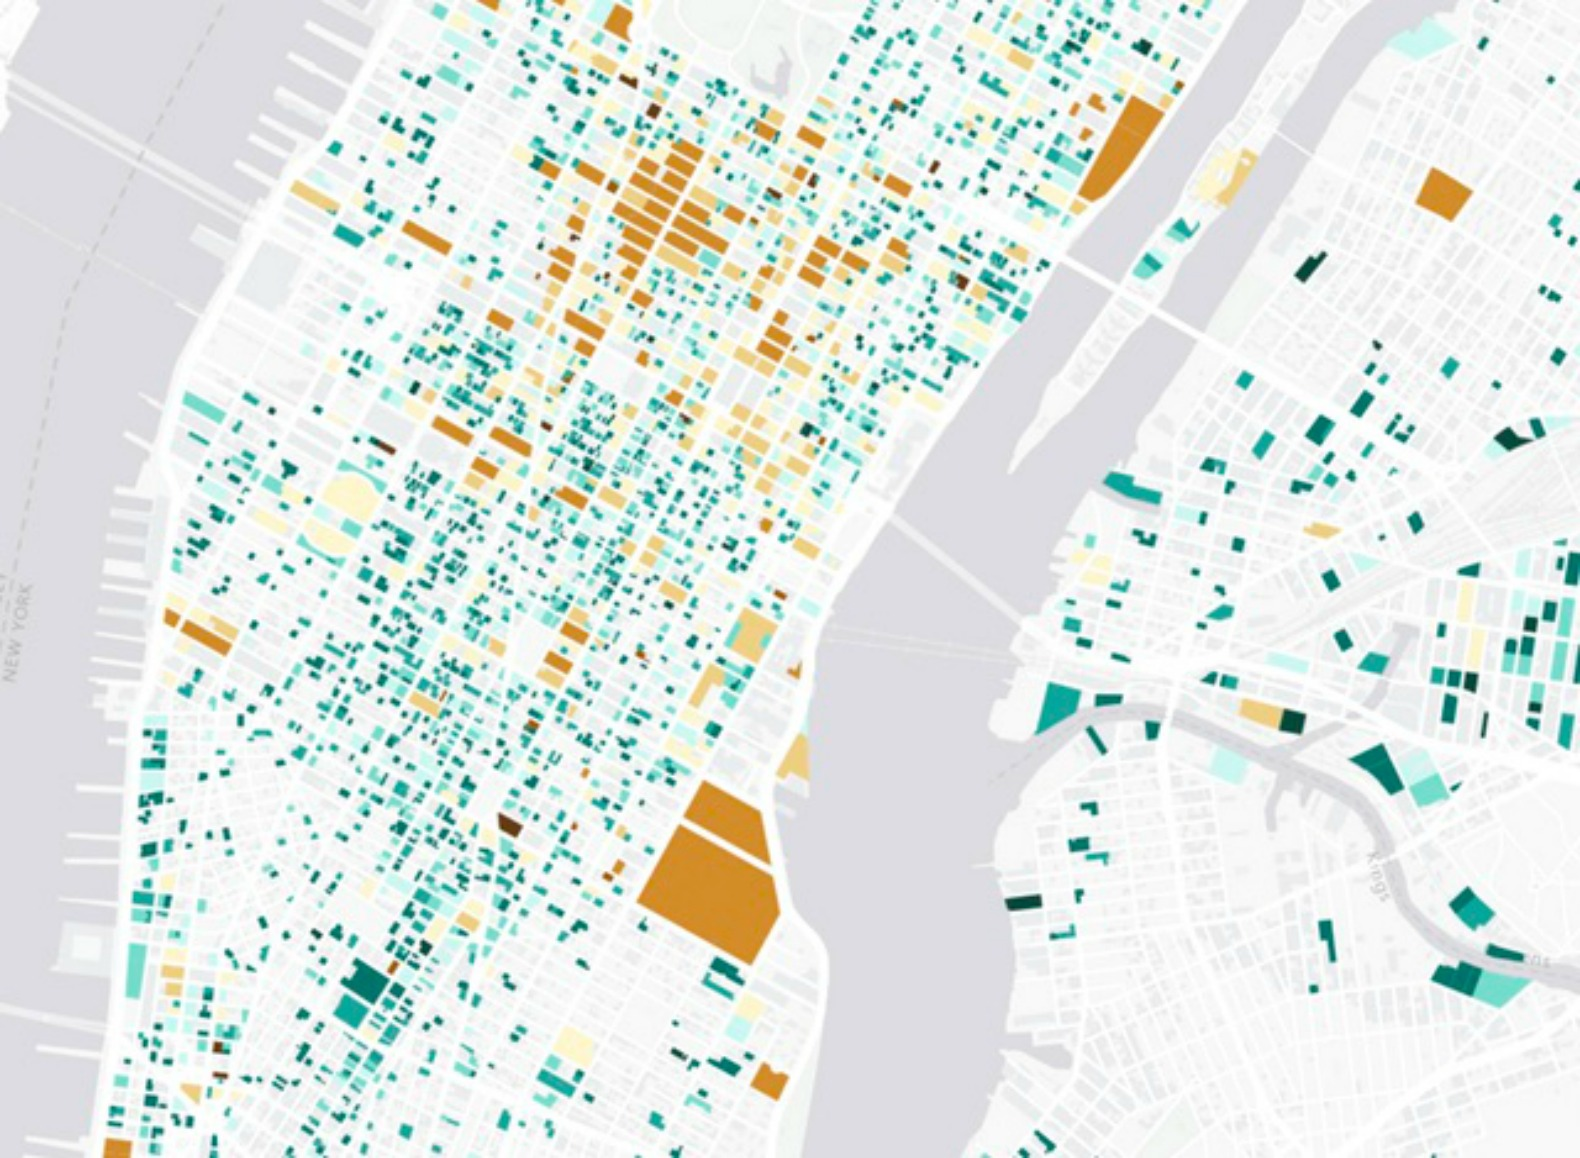 See which buildings in your 'hood produce the most greenhouse gas emissions with this map